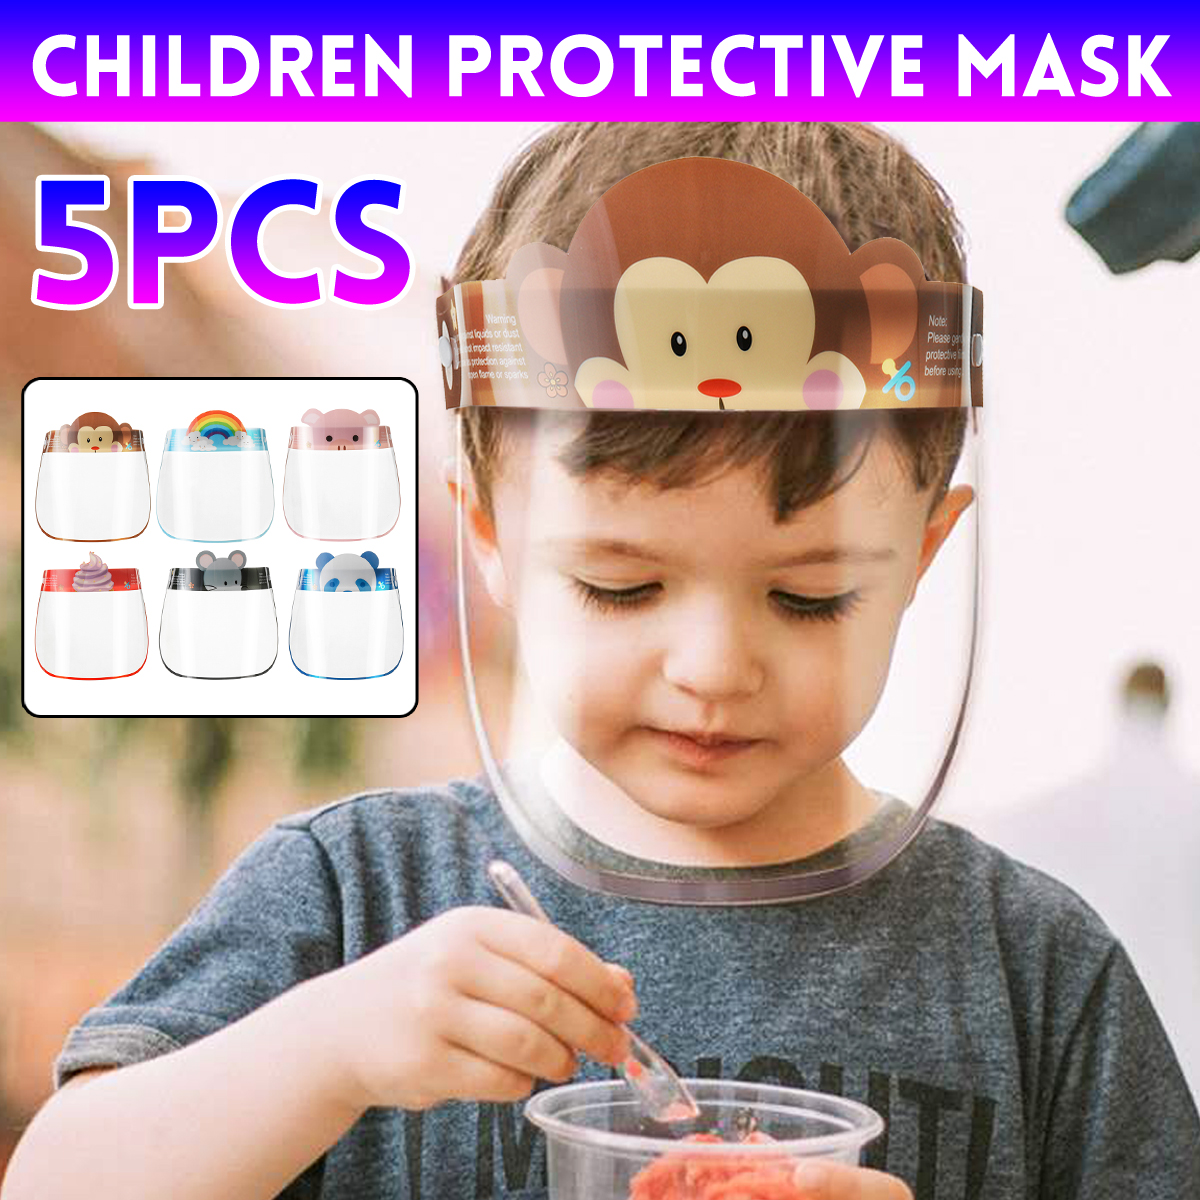 5PCS Kids Full Face Shield Mask Protective Visor Face Mask Plastic Anti Splash Anti Saliva Dust-proof Full Face Cover